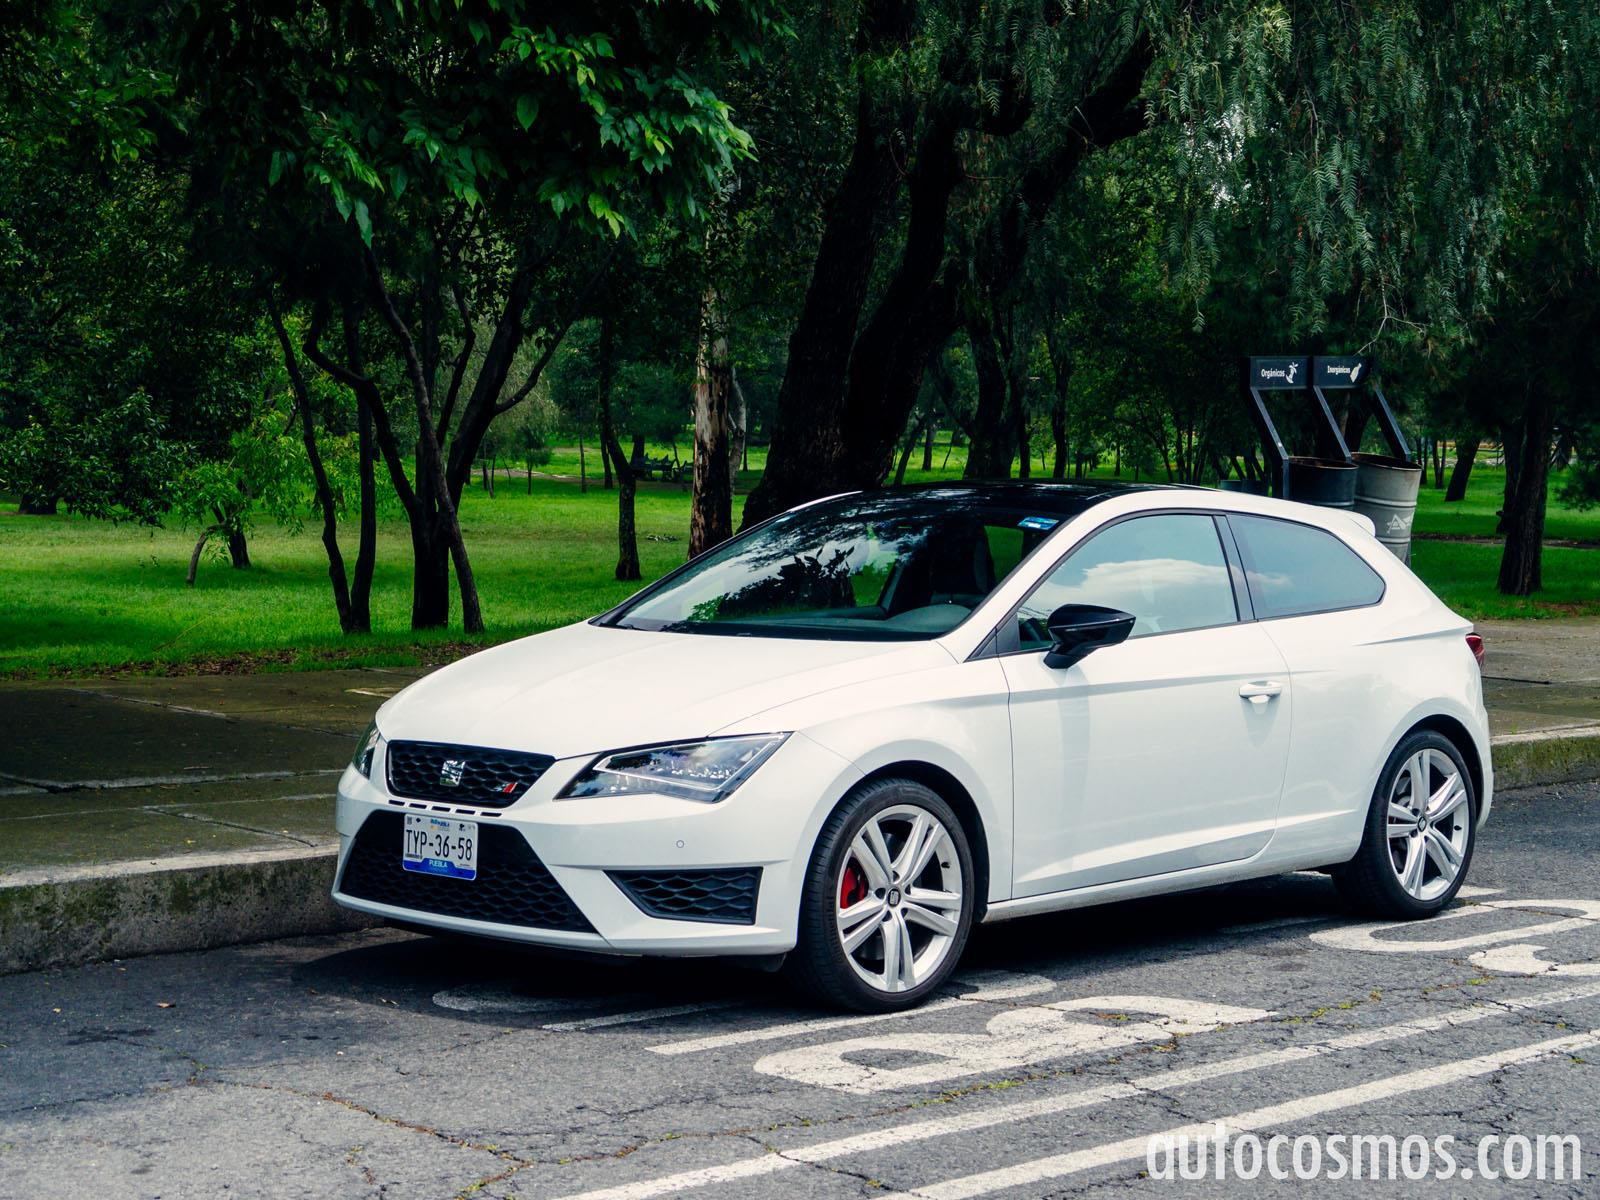 seat le n cupra 2015 llega a m xico en 415 000 pesos. Black Bedroom Furniture Sets. Home Design Ideas